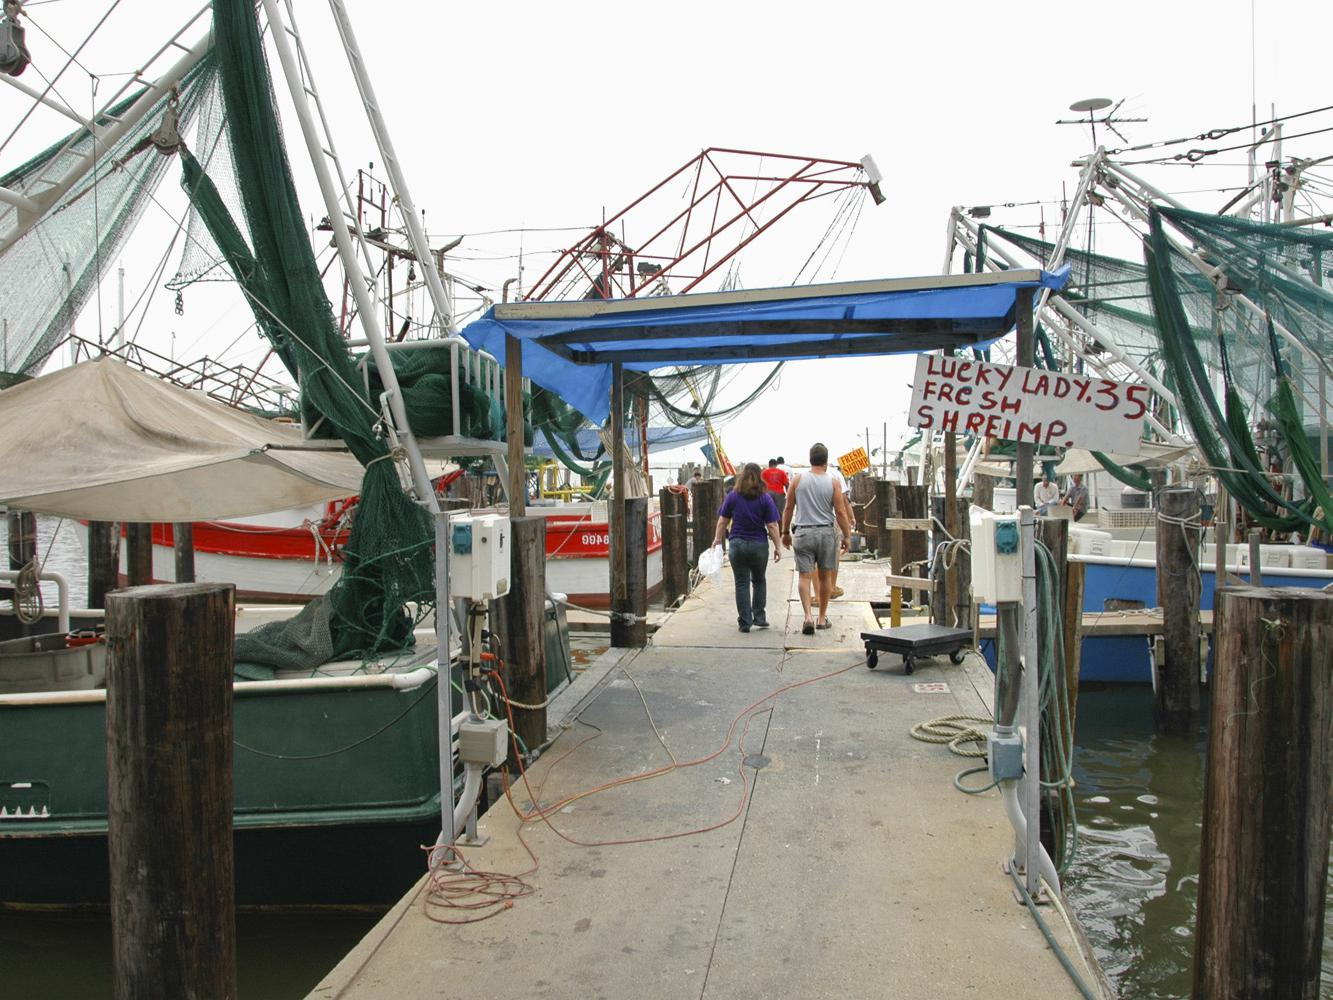 Shrimp boats line the public docks in Biloxi after spending the night harvesting in the Gulf. Shrimp lovers are finding good supplies, but prices are up this season. (Photo by Bob Ratliff)